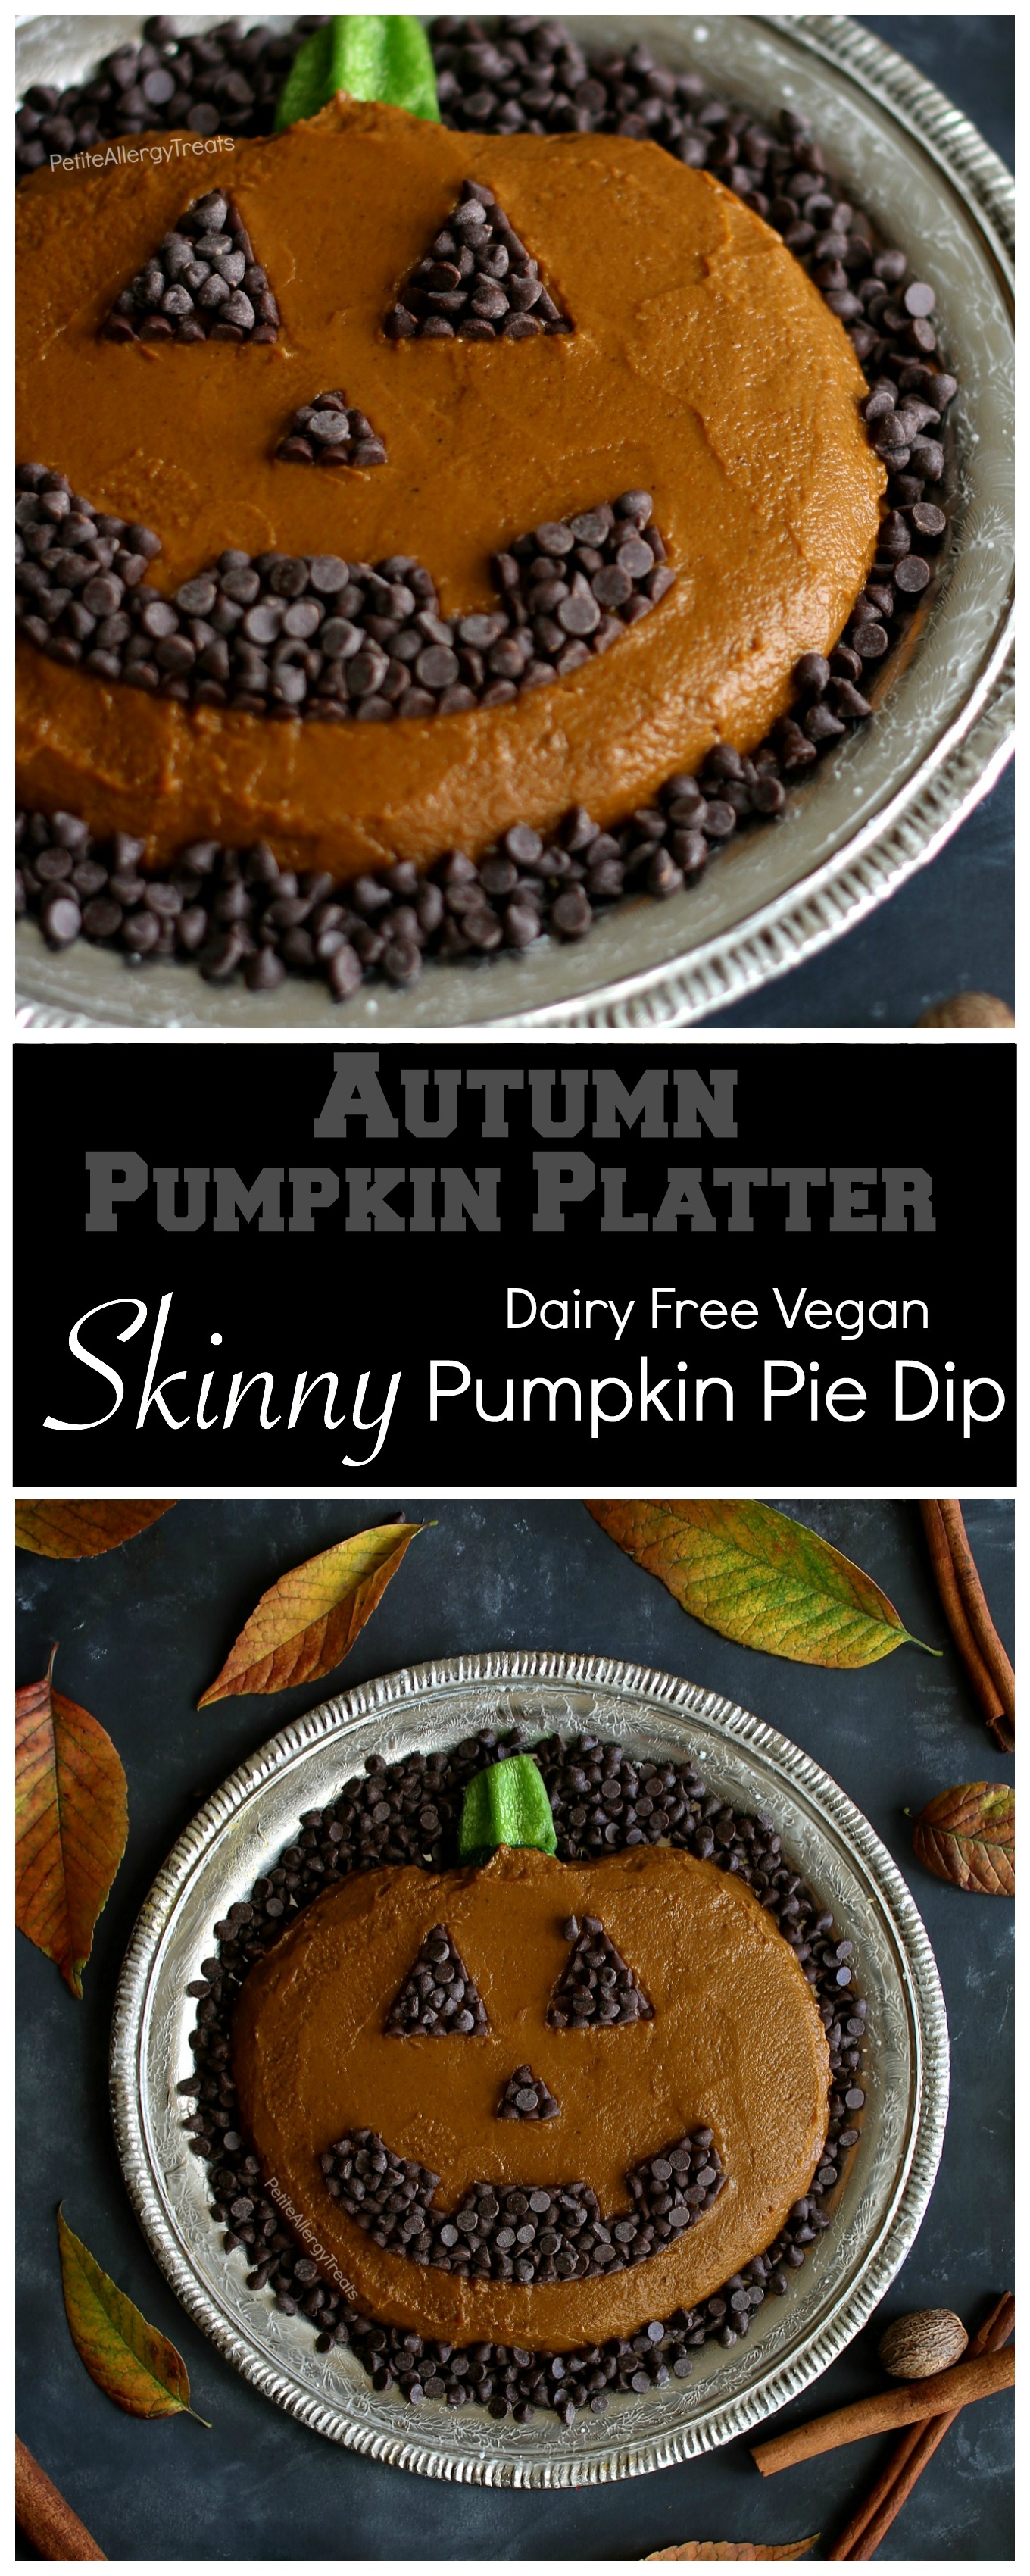 Dairy Free Skinny Pumpkin Pie Dip Recipe (vegan)- Adorable pumpkin platter for Fall, Halloween or Autumn parties! Food Allergy friendly!